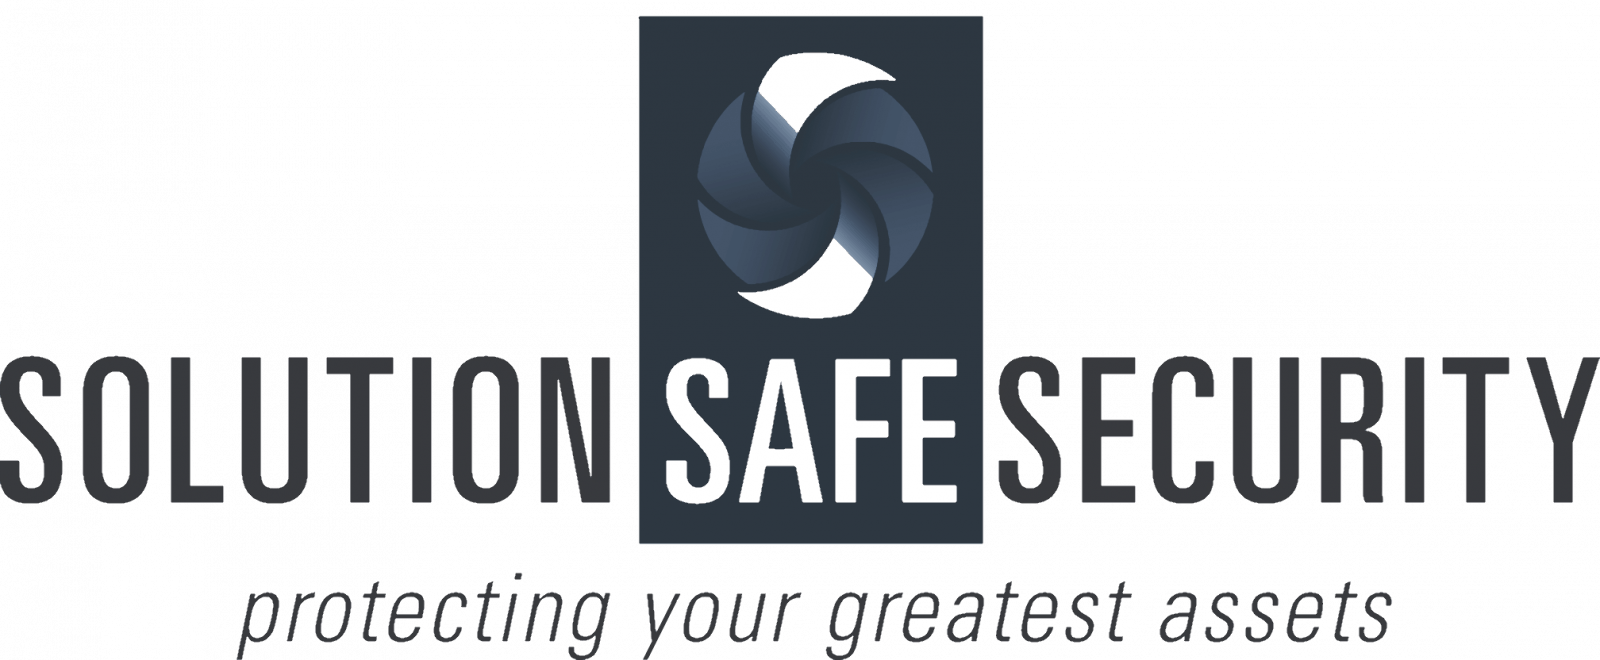 SolutionSafeSecurity